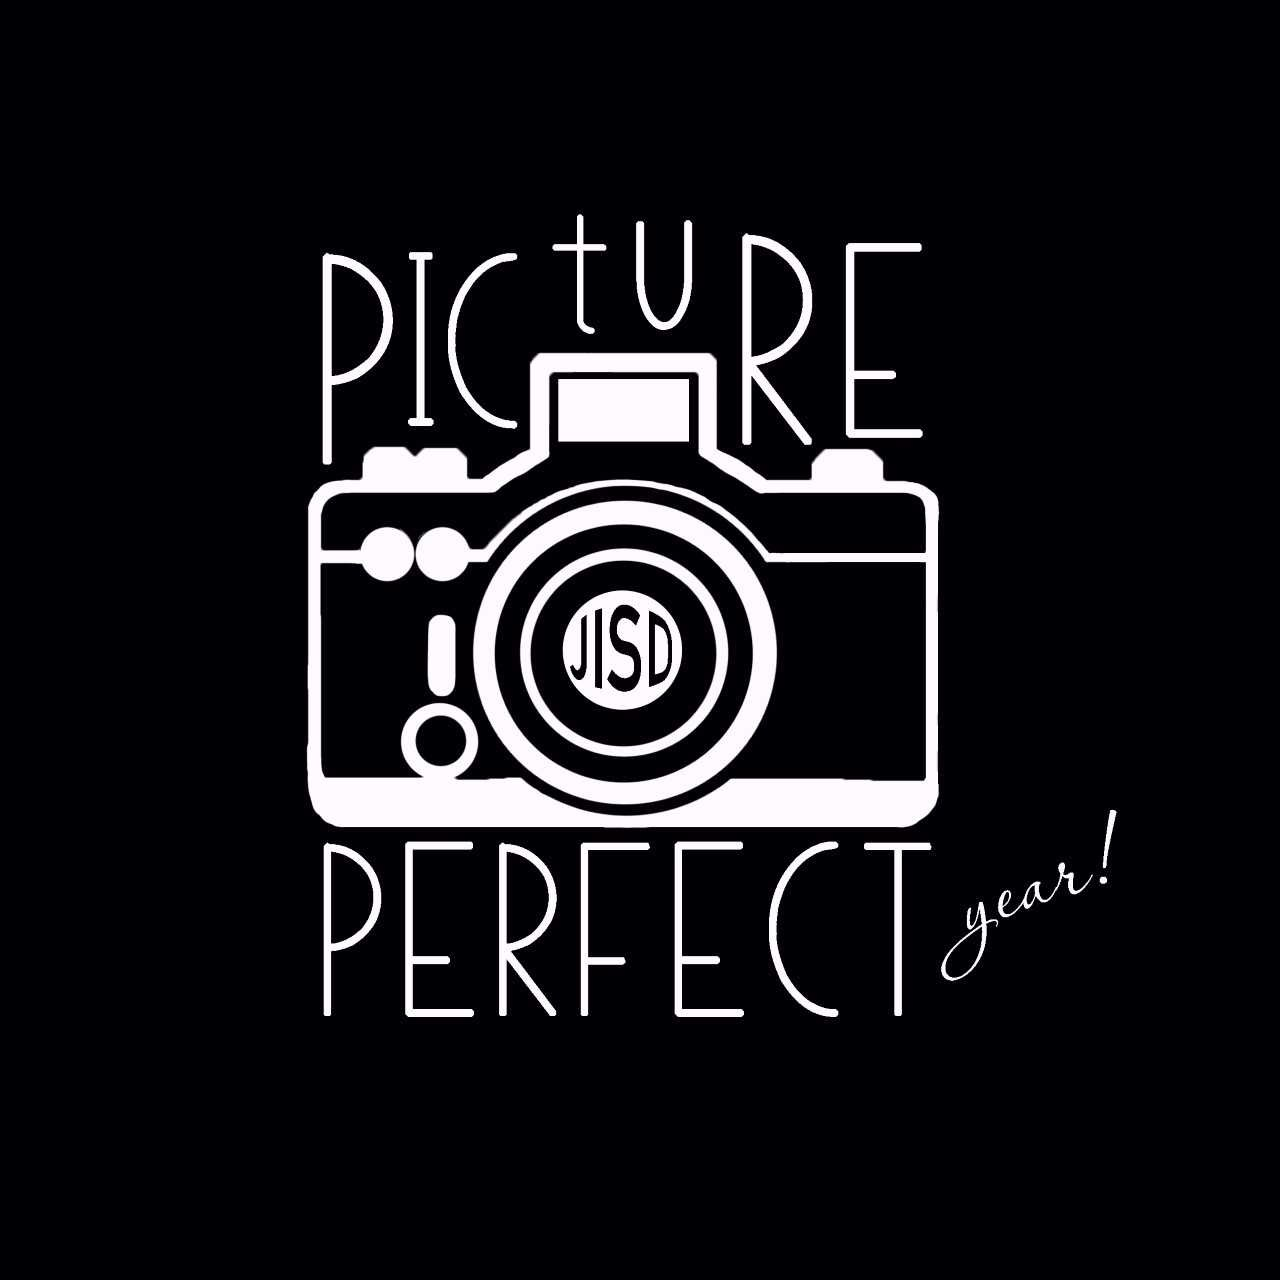 JISD Picture PErfect Year Logo